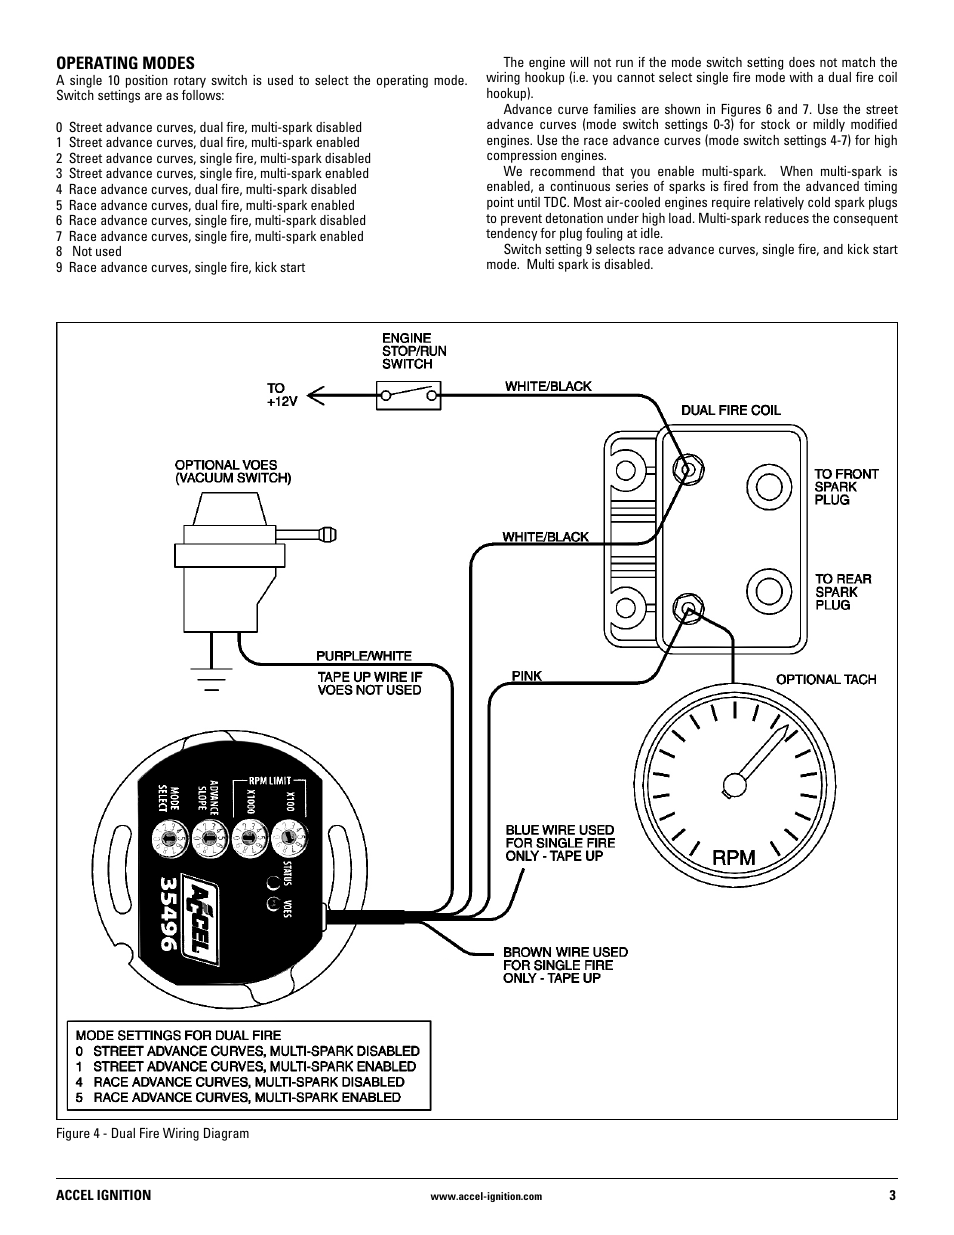 mallory ignition accel ignition 35496 page3?resize\\\\\\\\\\\\\\\=665%2C861 mallory unilite wiring diagram tamahuproject org mallory unilite wiring diagram at soozxer.org